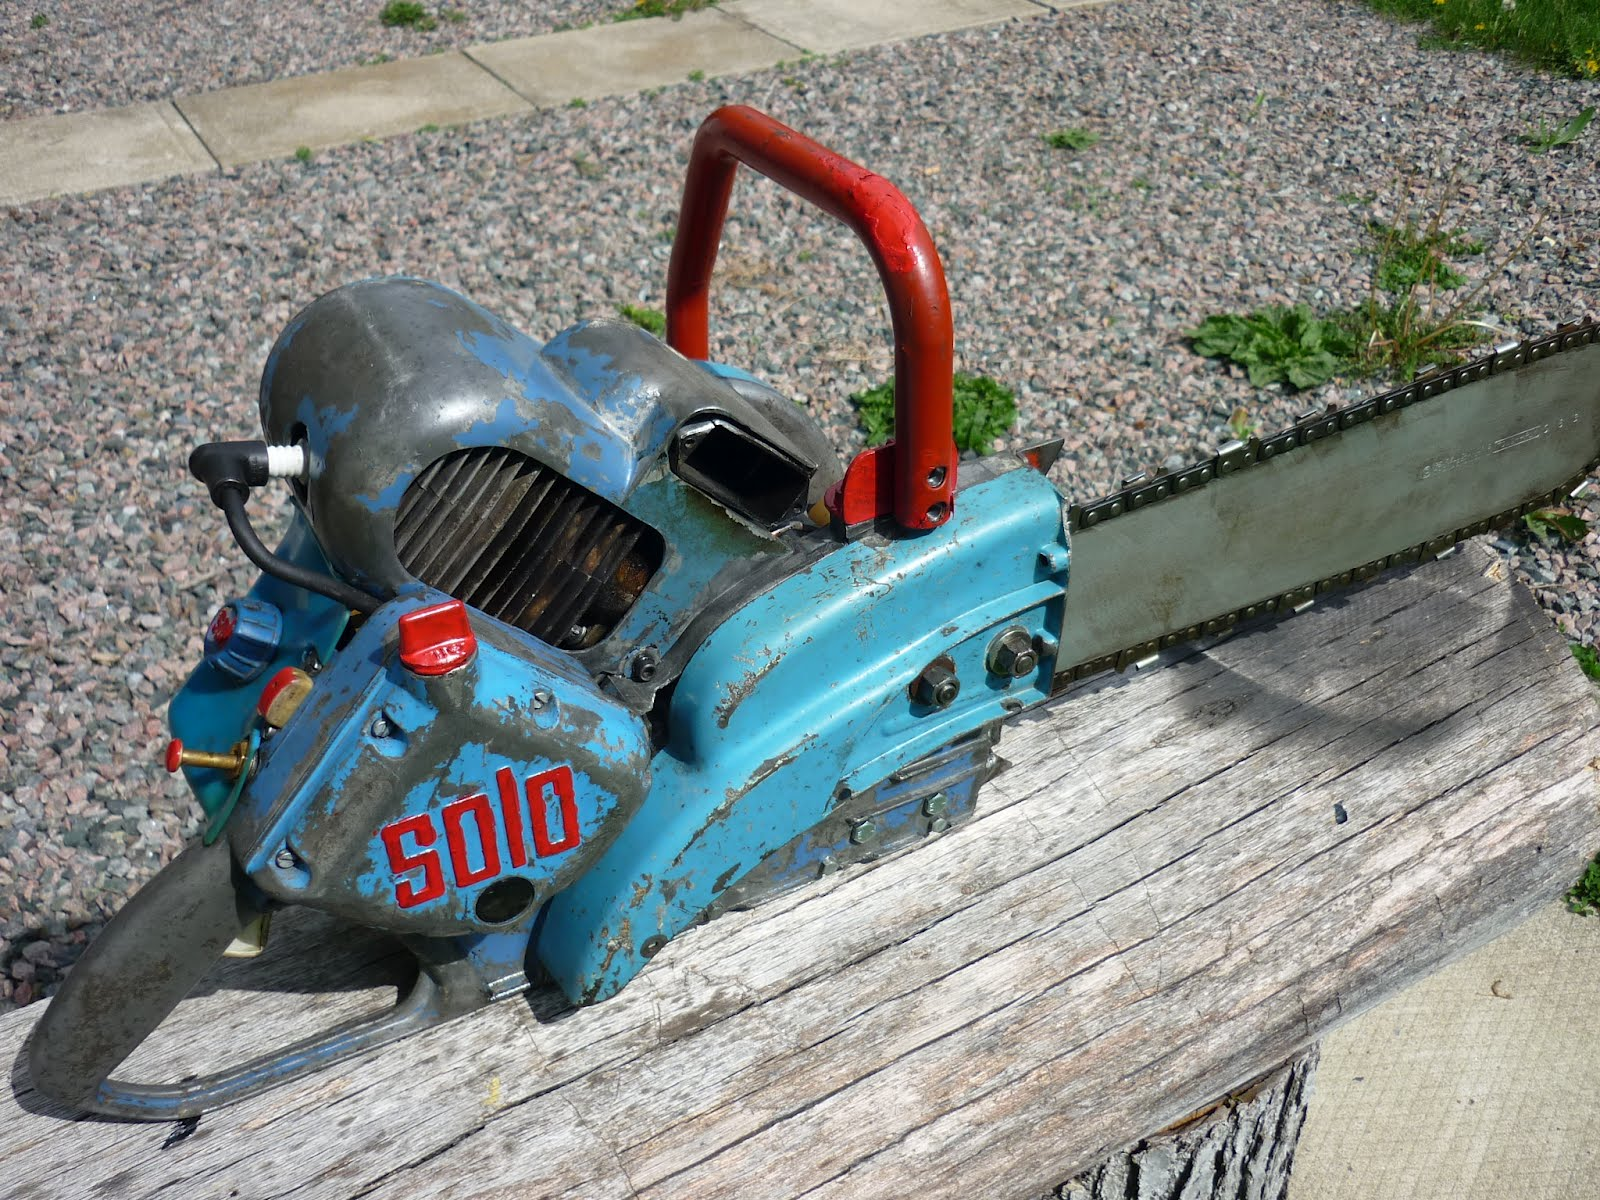 Vintage Chainsaw Collection Solo Rex Briggs And Stratton Engine Diagram Moreover 16 Hp